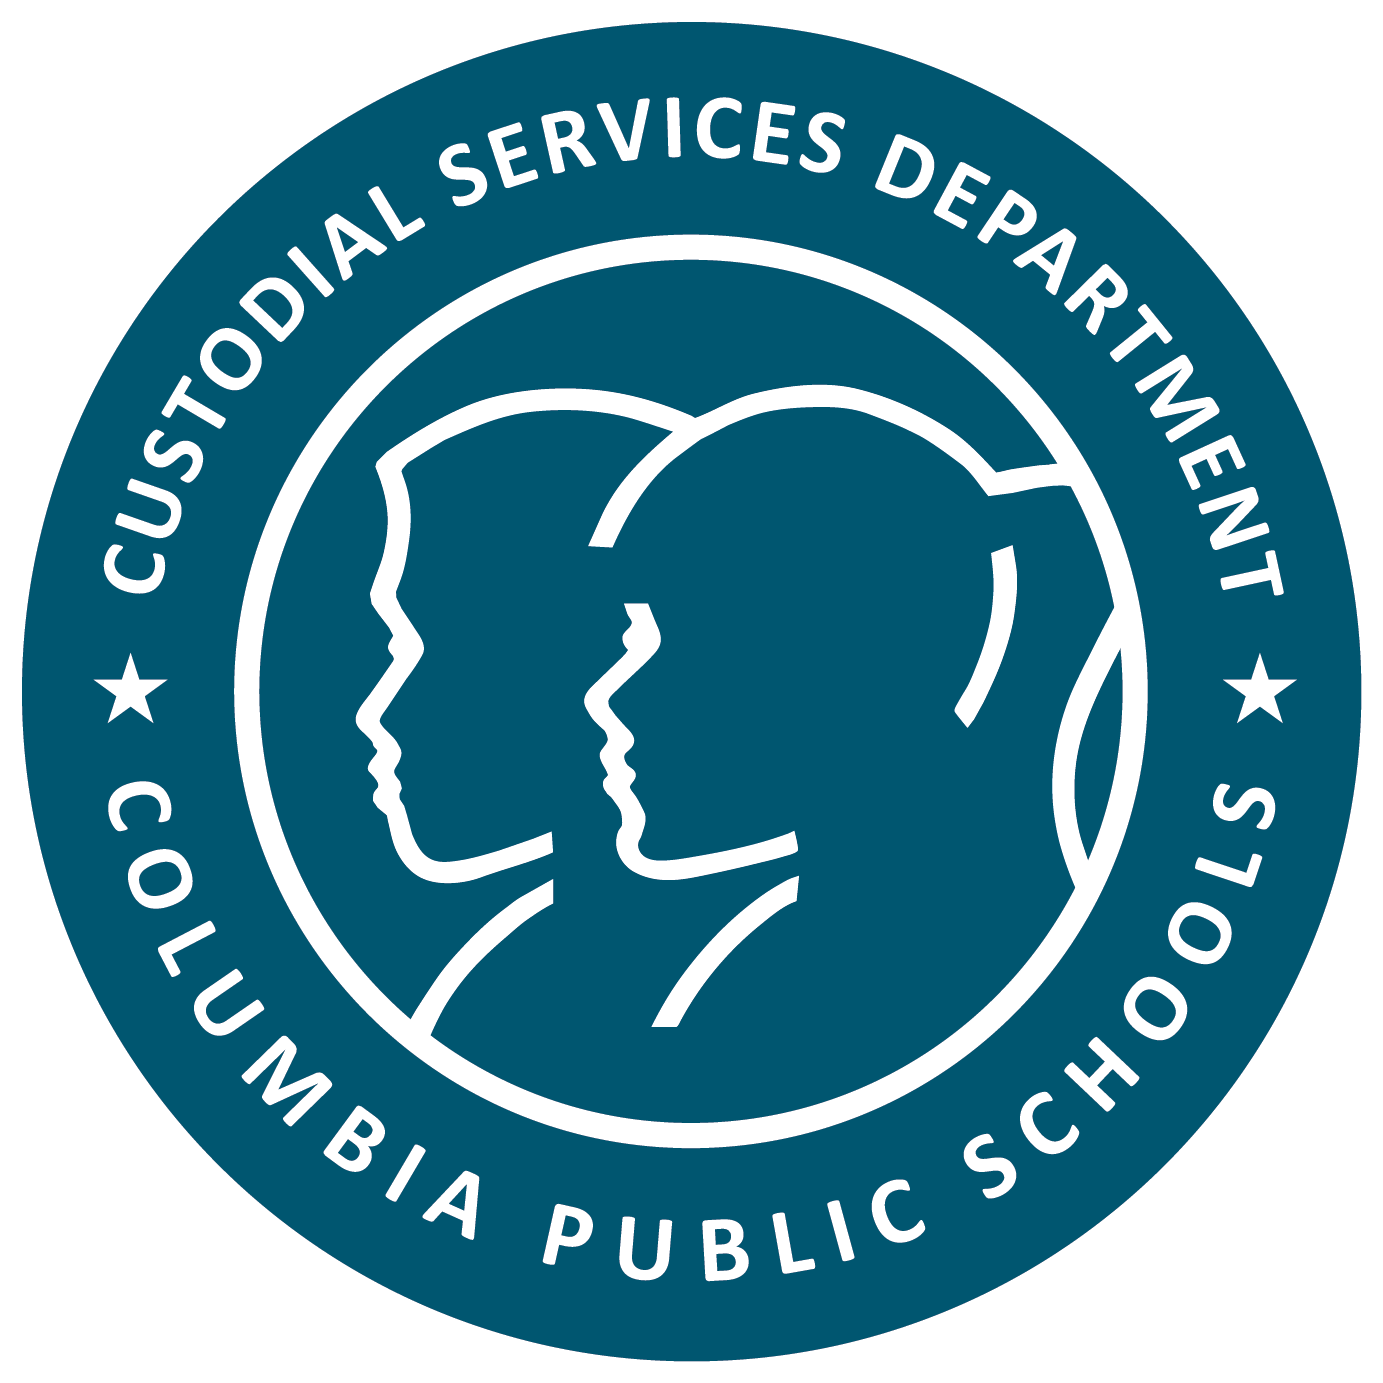 CustodialServicesDepartmentLogo